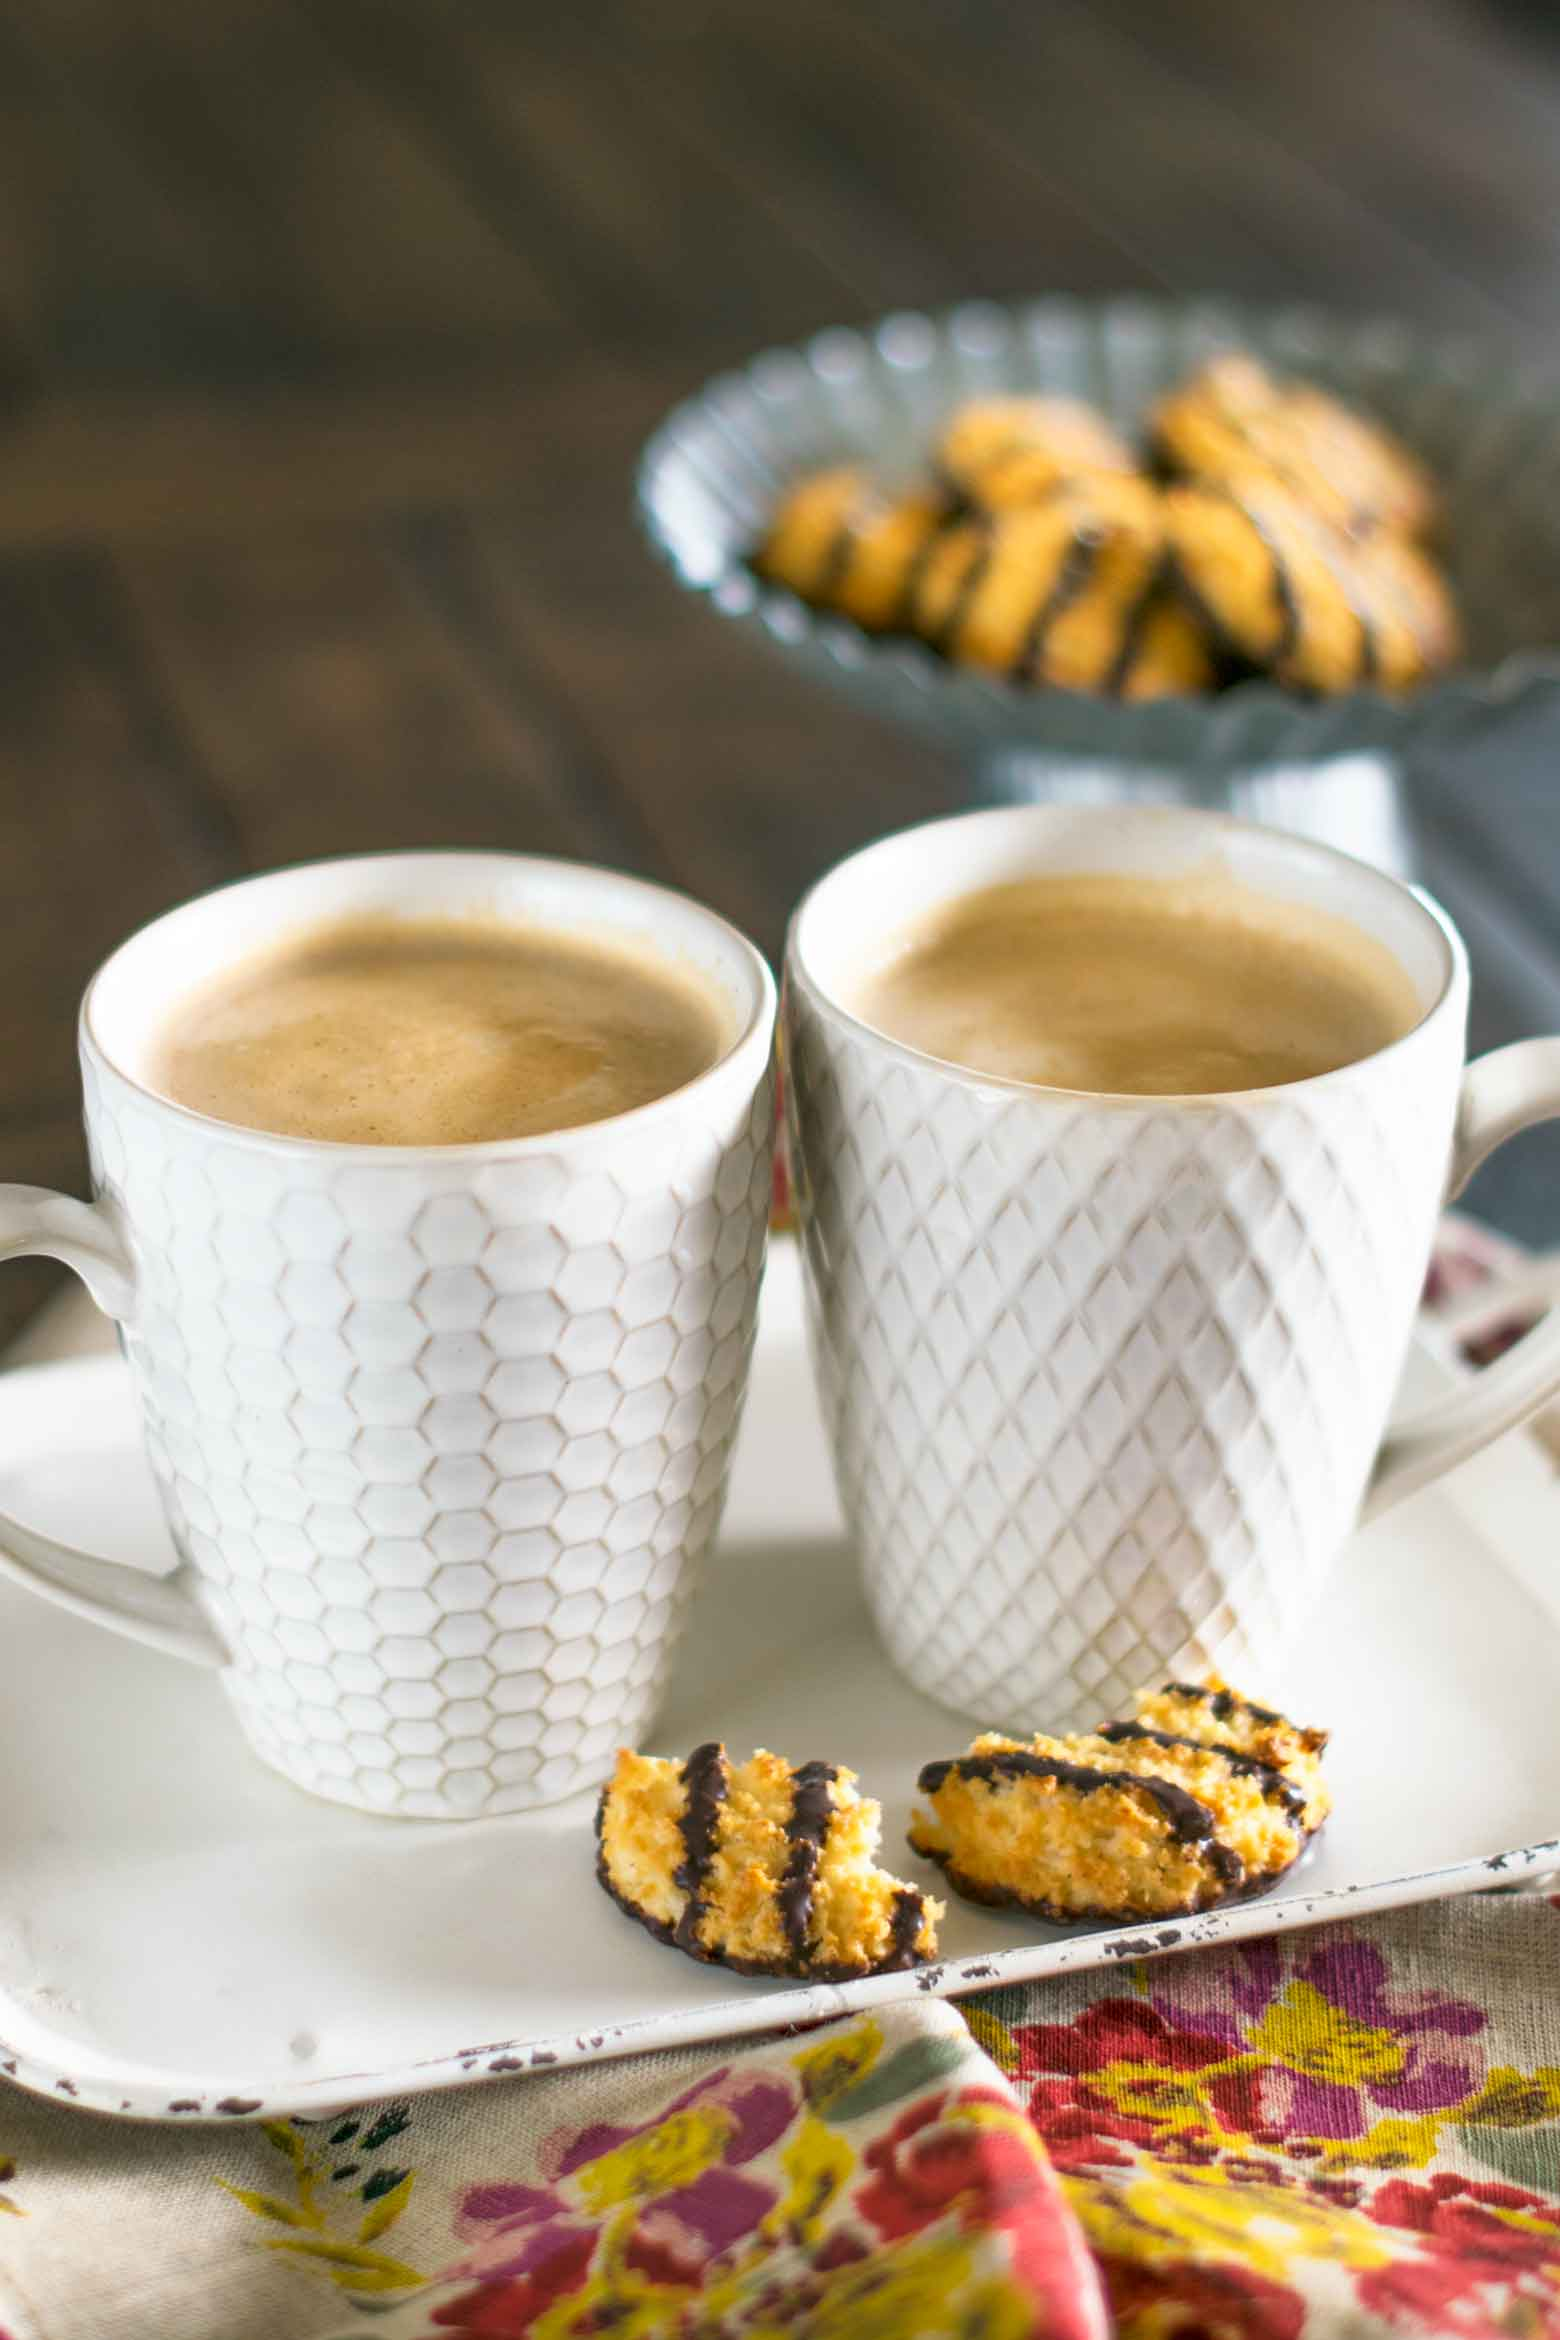 Vanilla caramel mocha lattes are sure to elevate your tastebuds above a plain ho-hum coffee. See the simple recipe for how easy it is to combine these flavors to make a delicious breakfast drink!